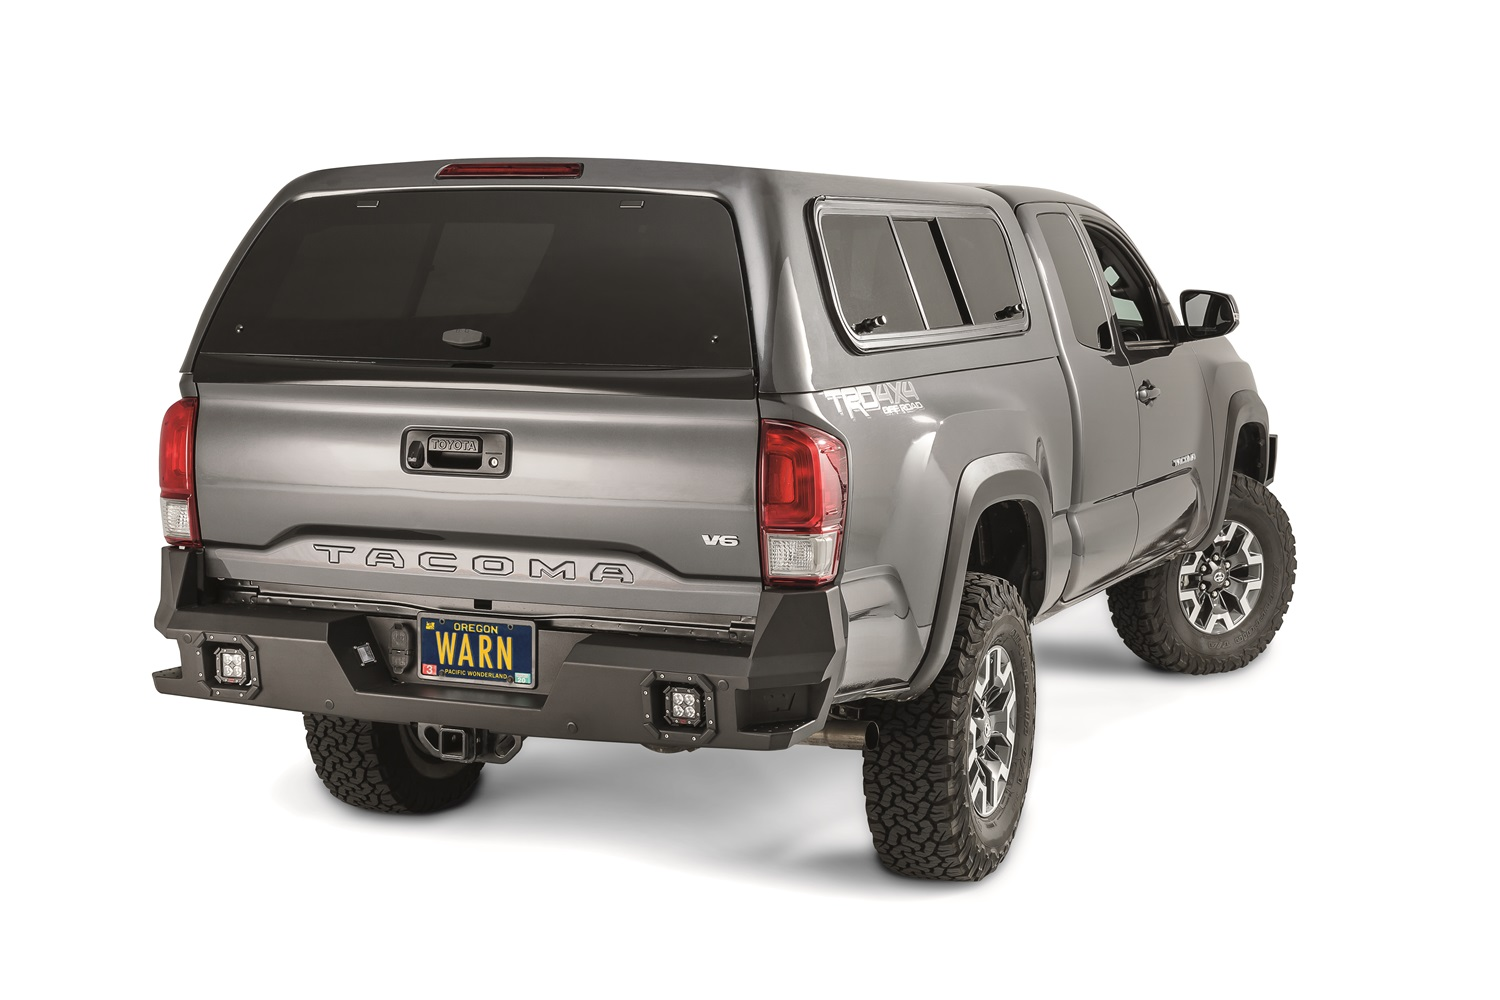 Warn 98054 Ascent Rear Bumper Fits 16-18 Tacoma